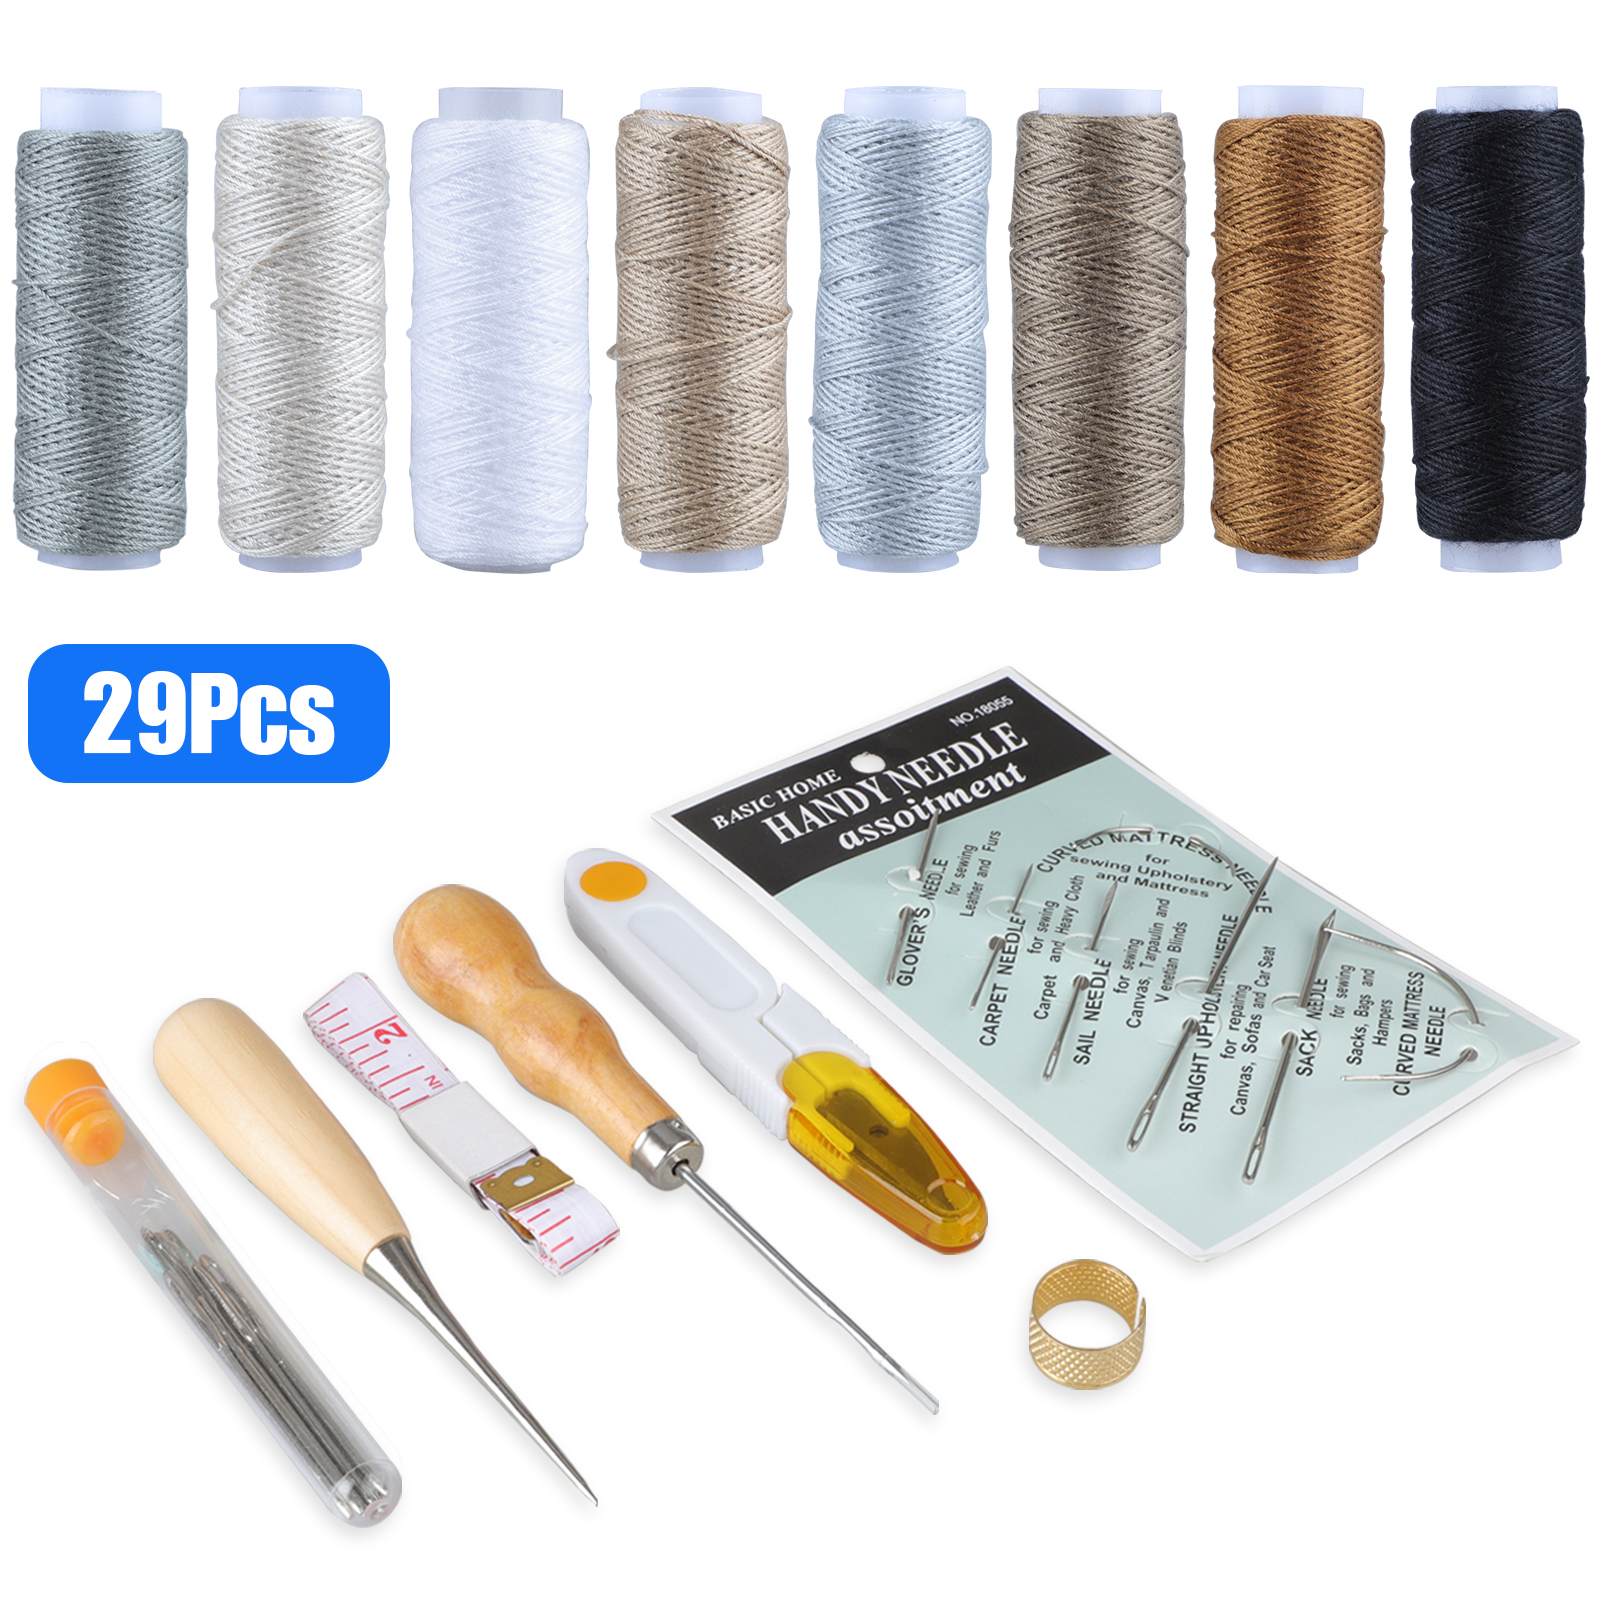 Leather Craft Repair Tool Kit Hand Sewing Needles Canvas Thread Needles Tape Measure Large-Eye Stitching Needles and Drilling Awls with Thread Spool Huggers Upholstery Repair Kit 33-Pack